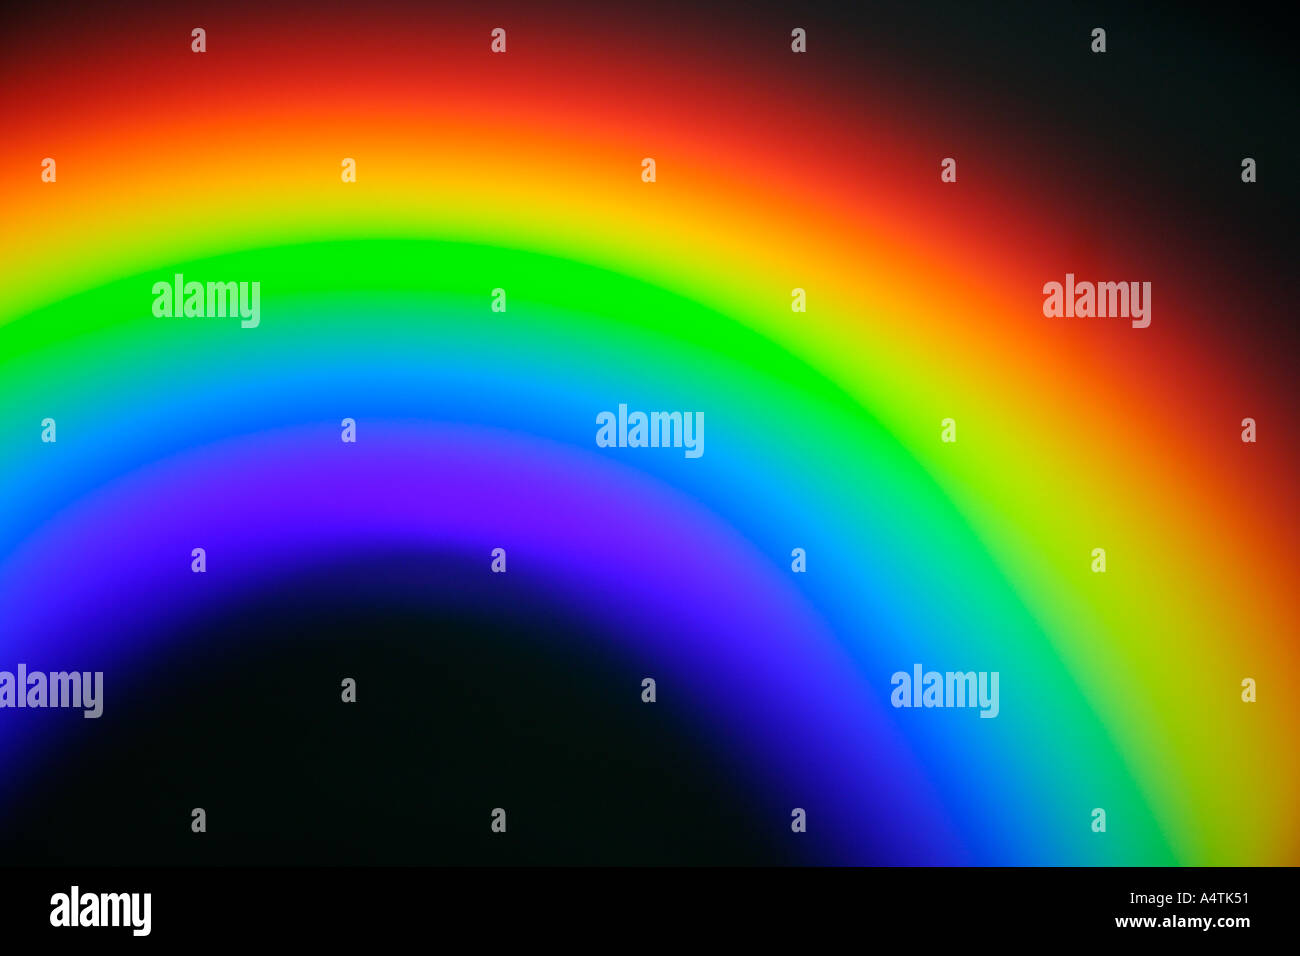 rainbow coloured reflection on surface of compact disc caused by light diffraction - Stock Image